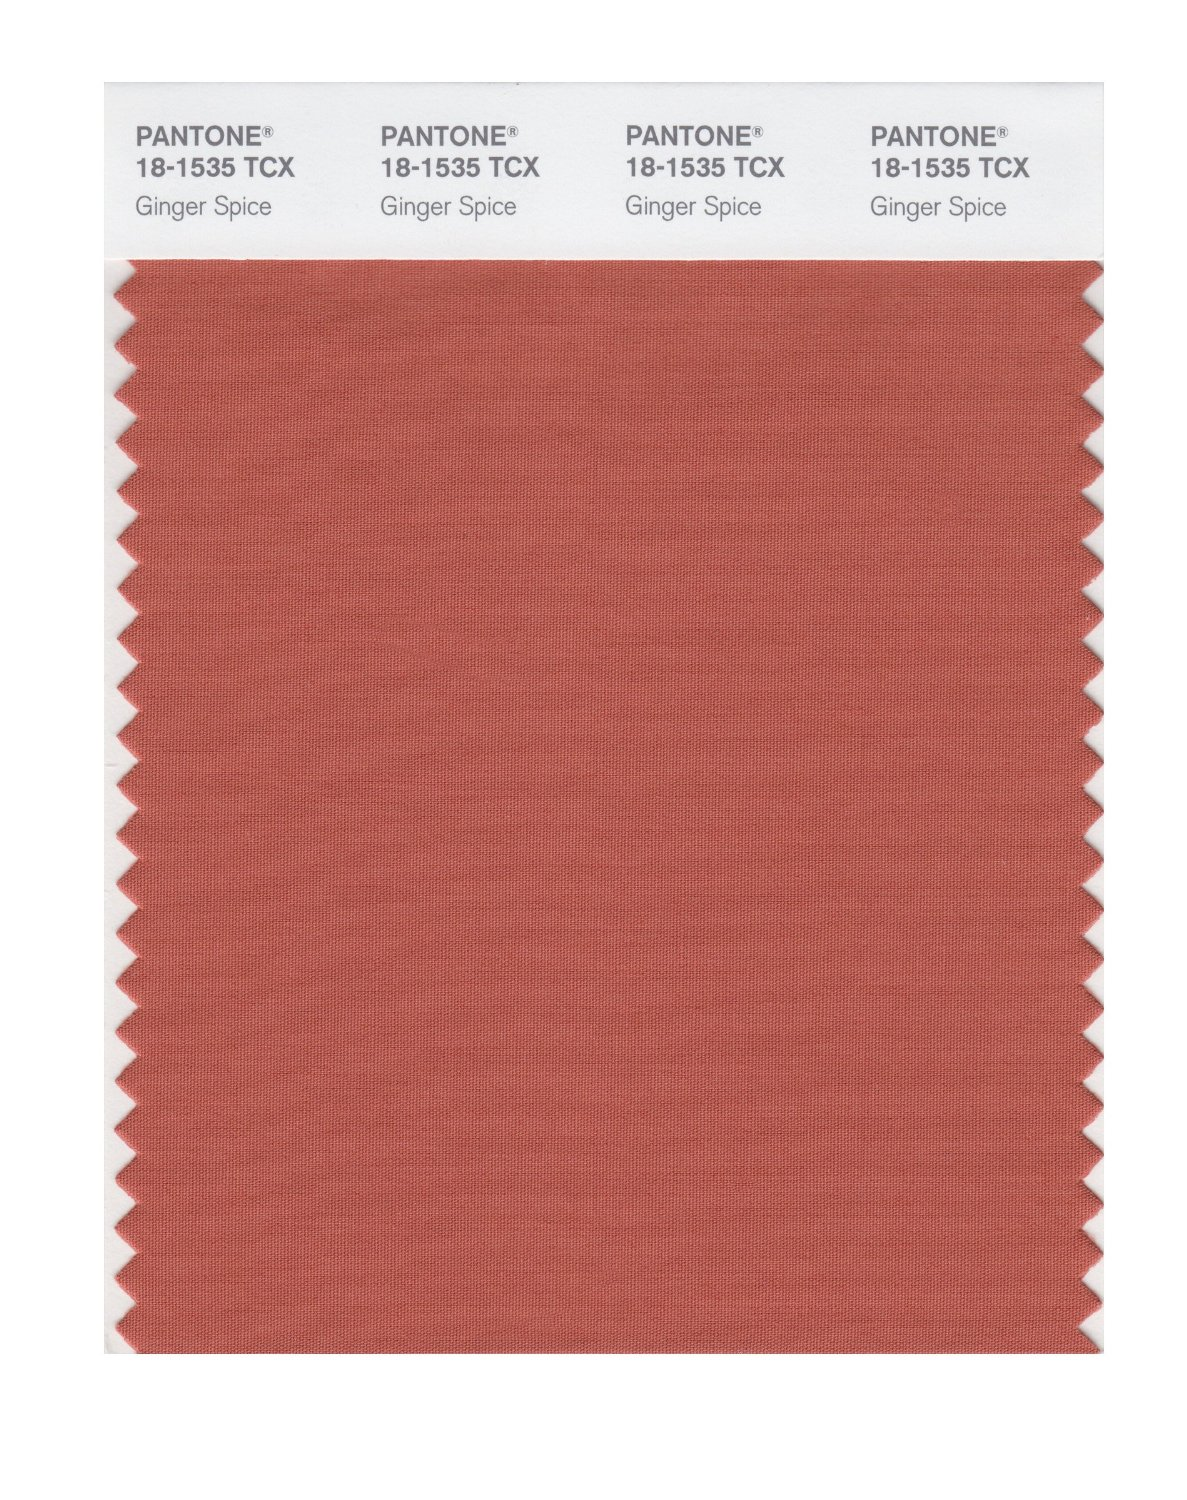 Pantone Smart Swatch 18-1535 Ginger Spice